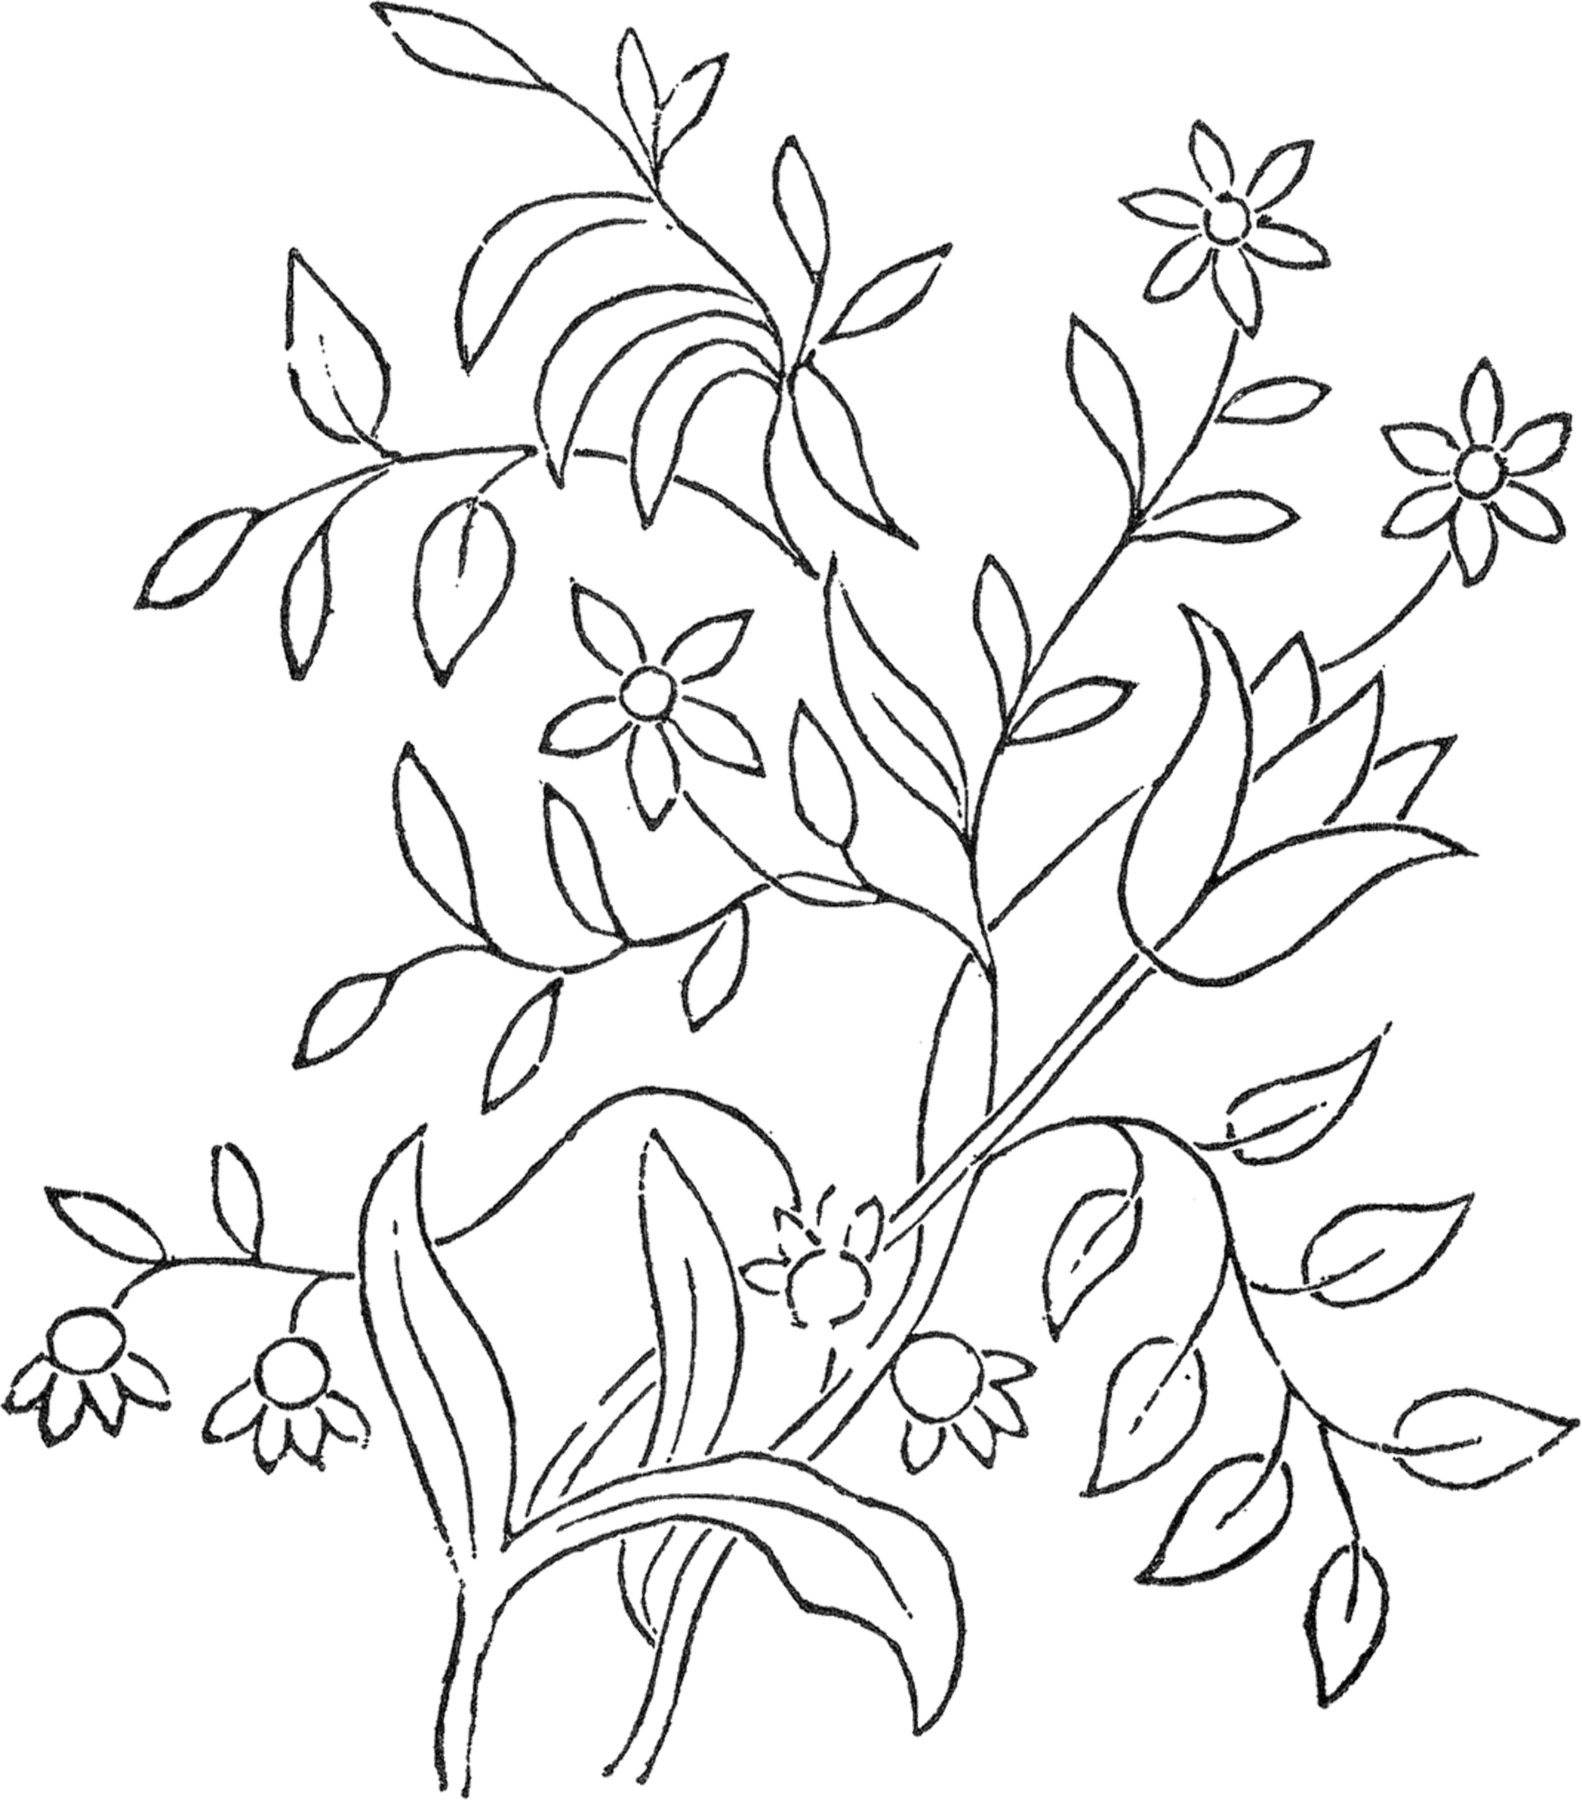 Flower Embroidery Patterns Magnificent Inspiration Ideas